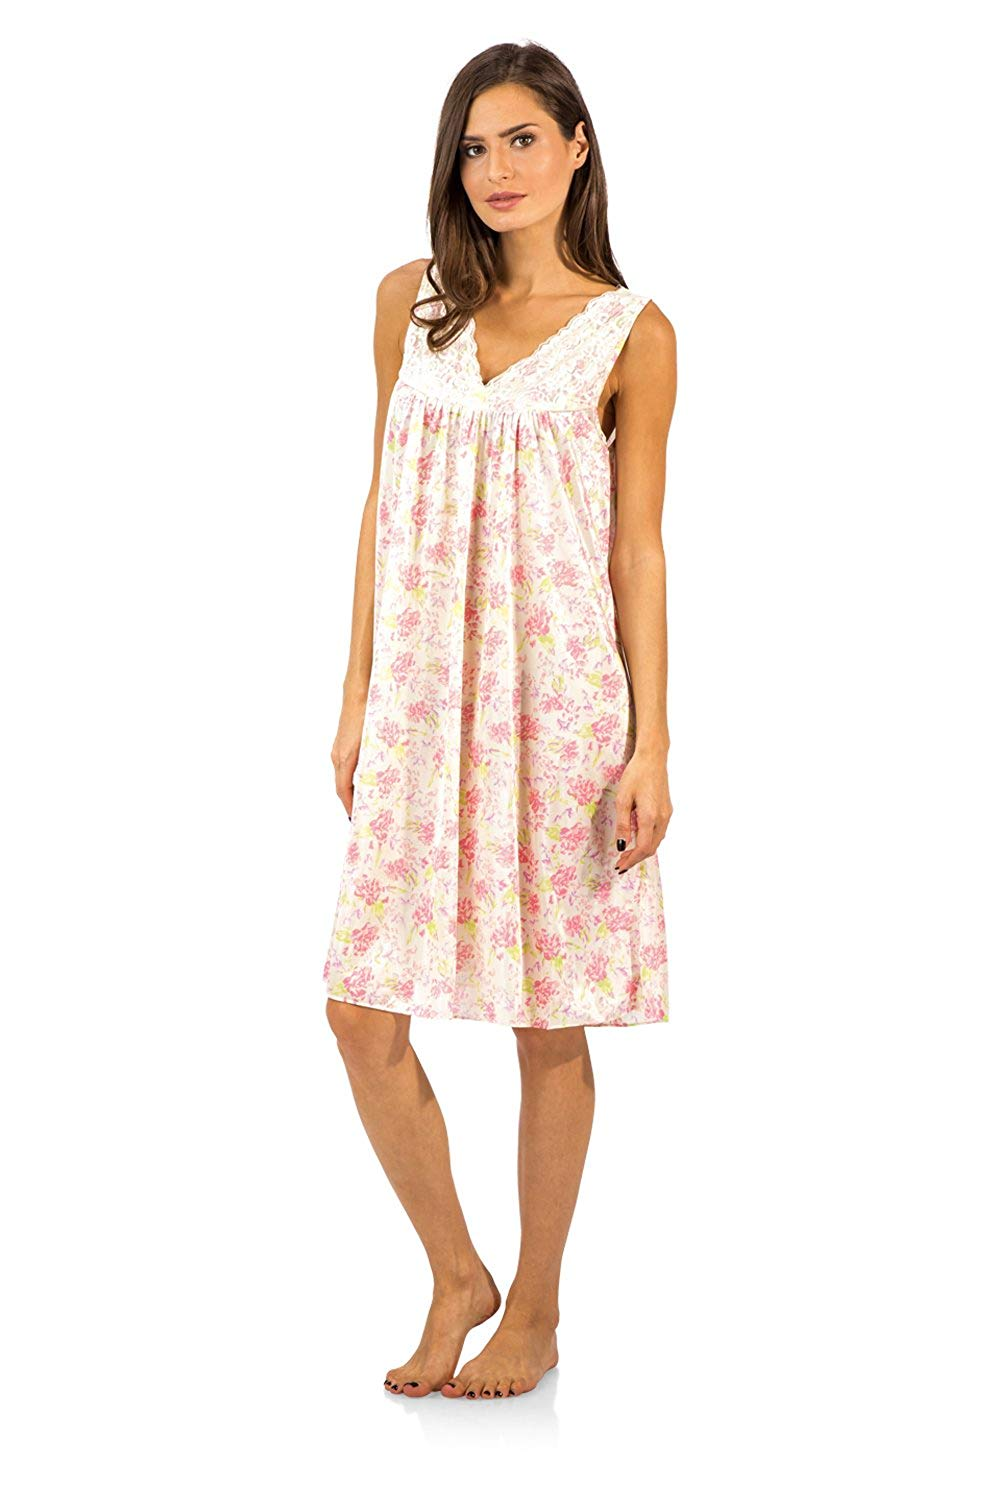 86b6accfdbce Get Quotations · Casual Nights Women s Flower Tricot Sleeveless Nightgown